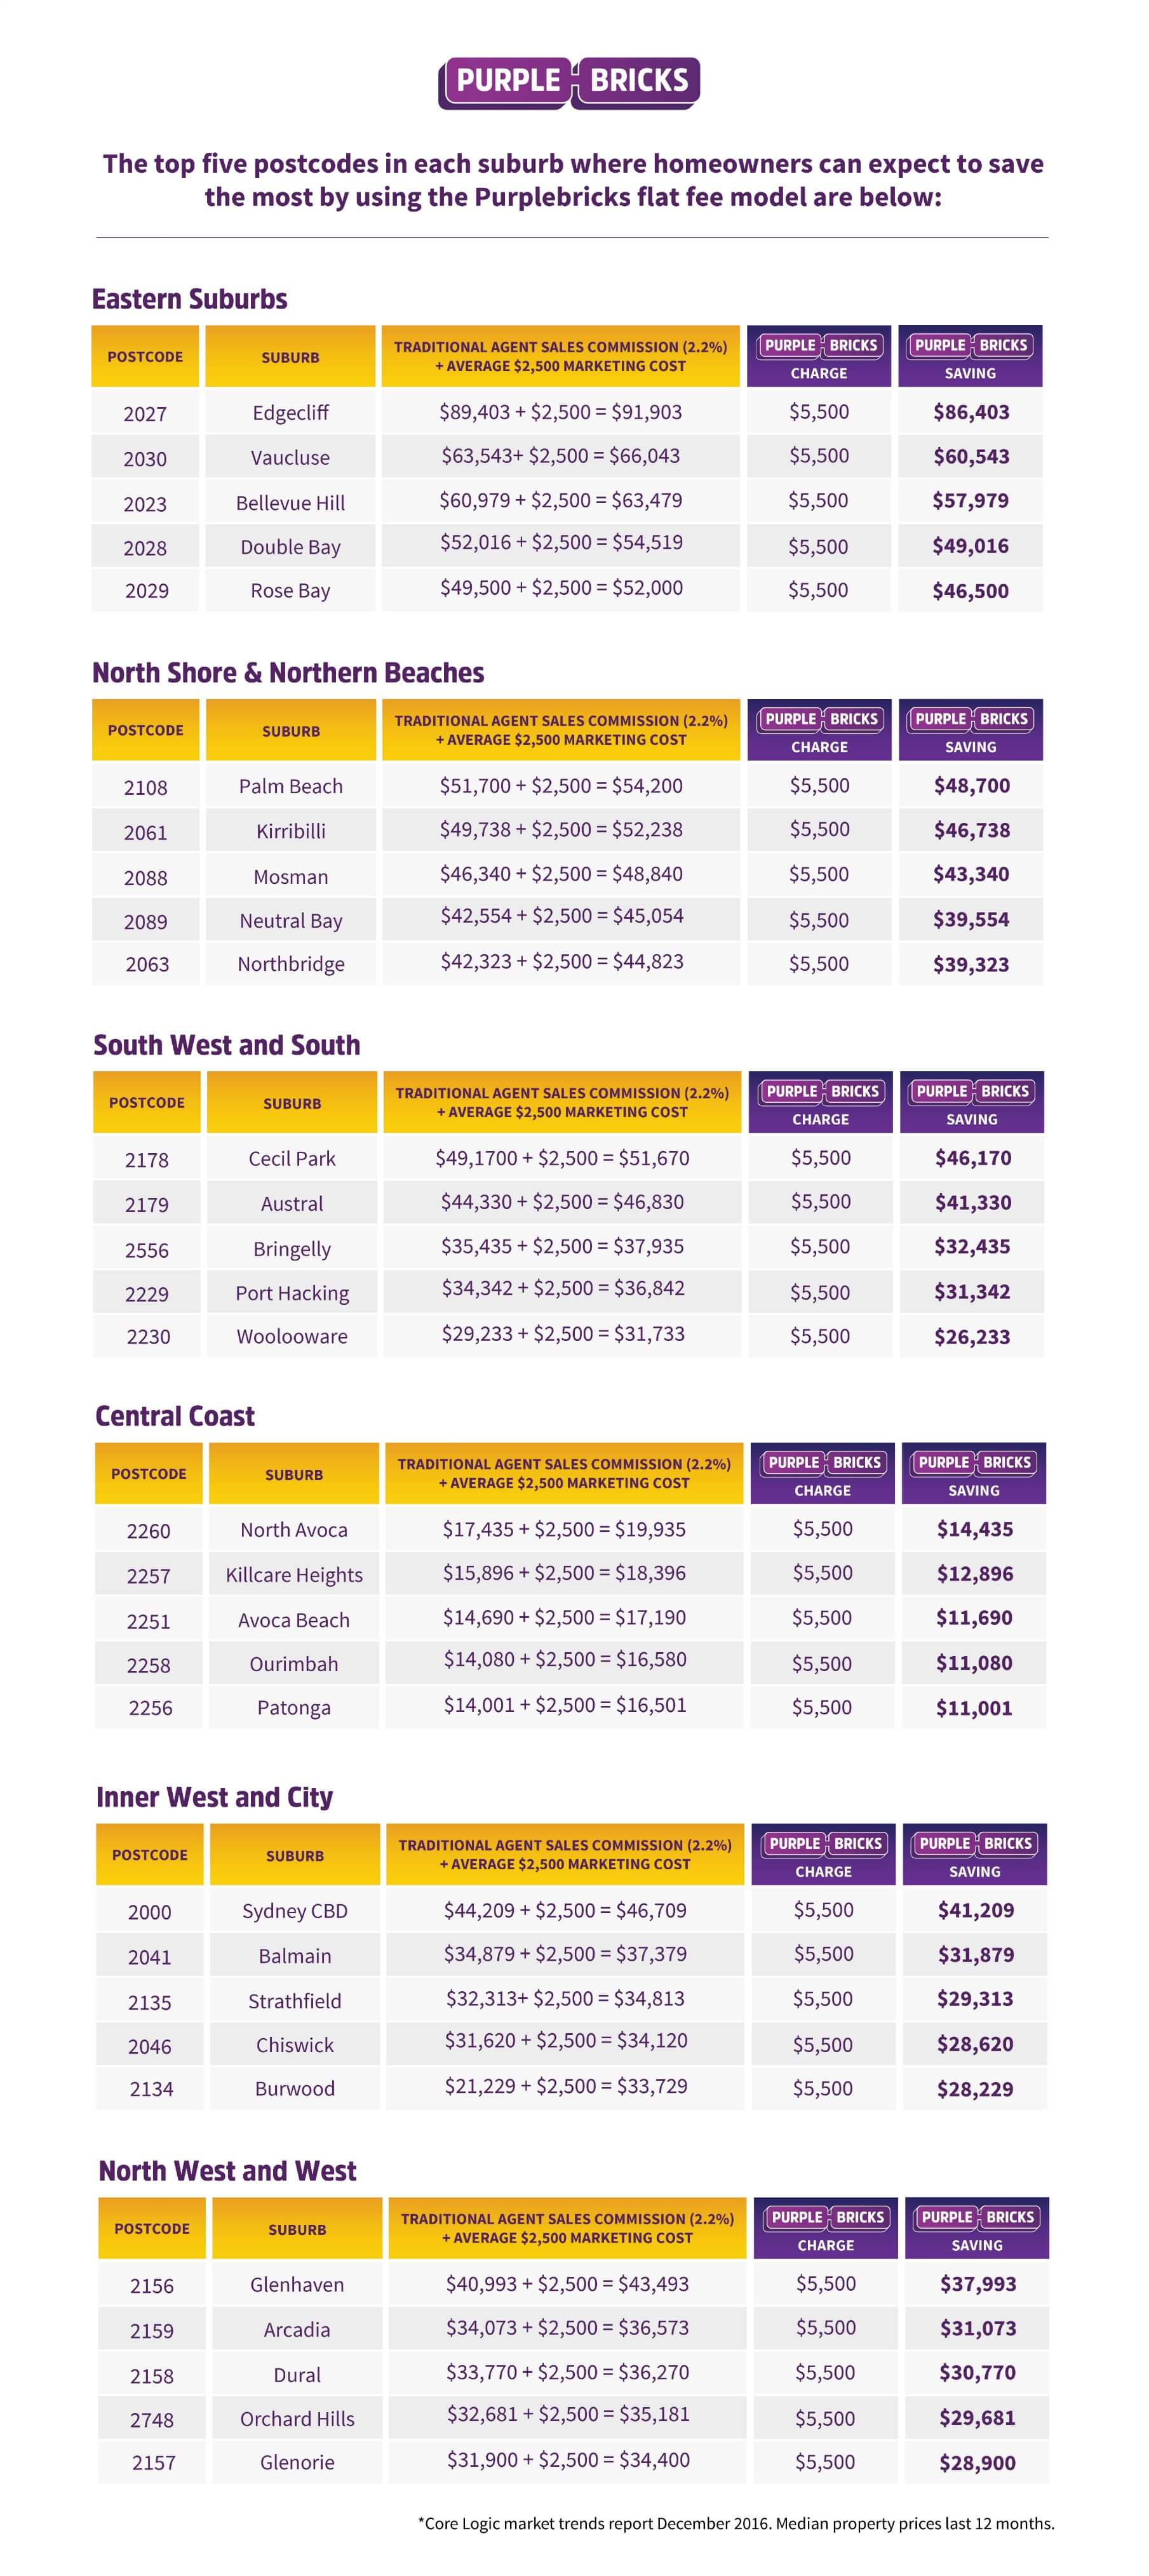 The top five postcodes in each suburb where homeowners can expect to save the most by using Purplebricks flat fee model